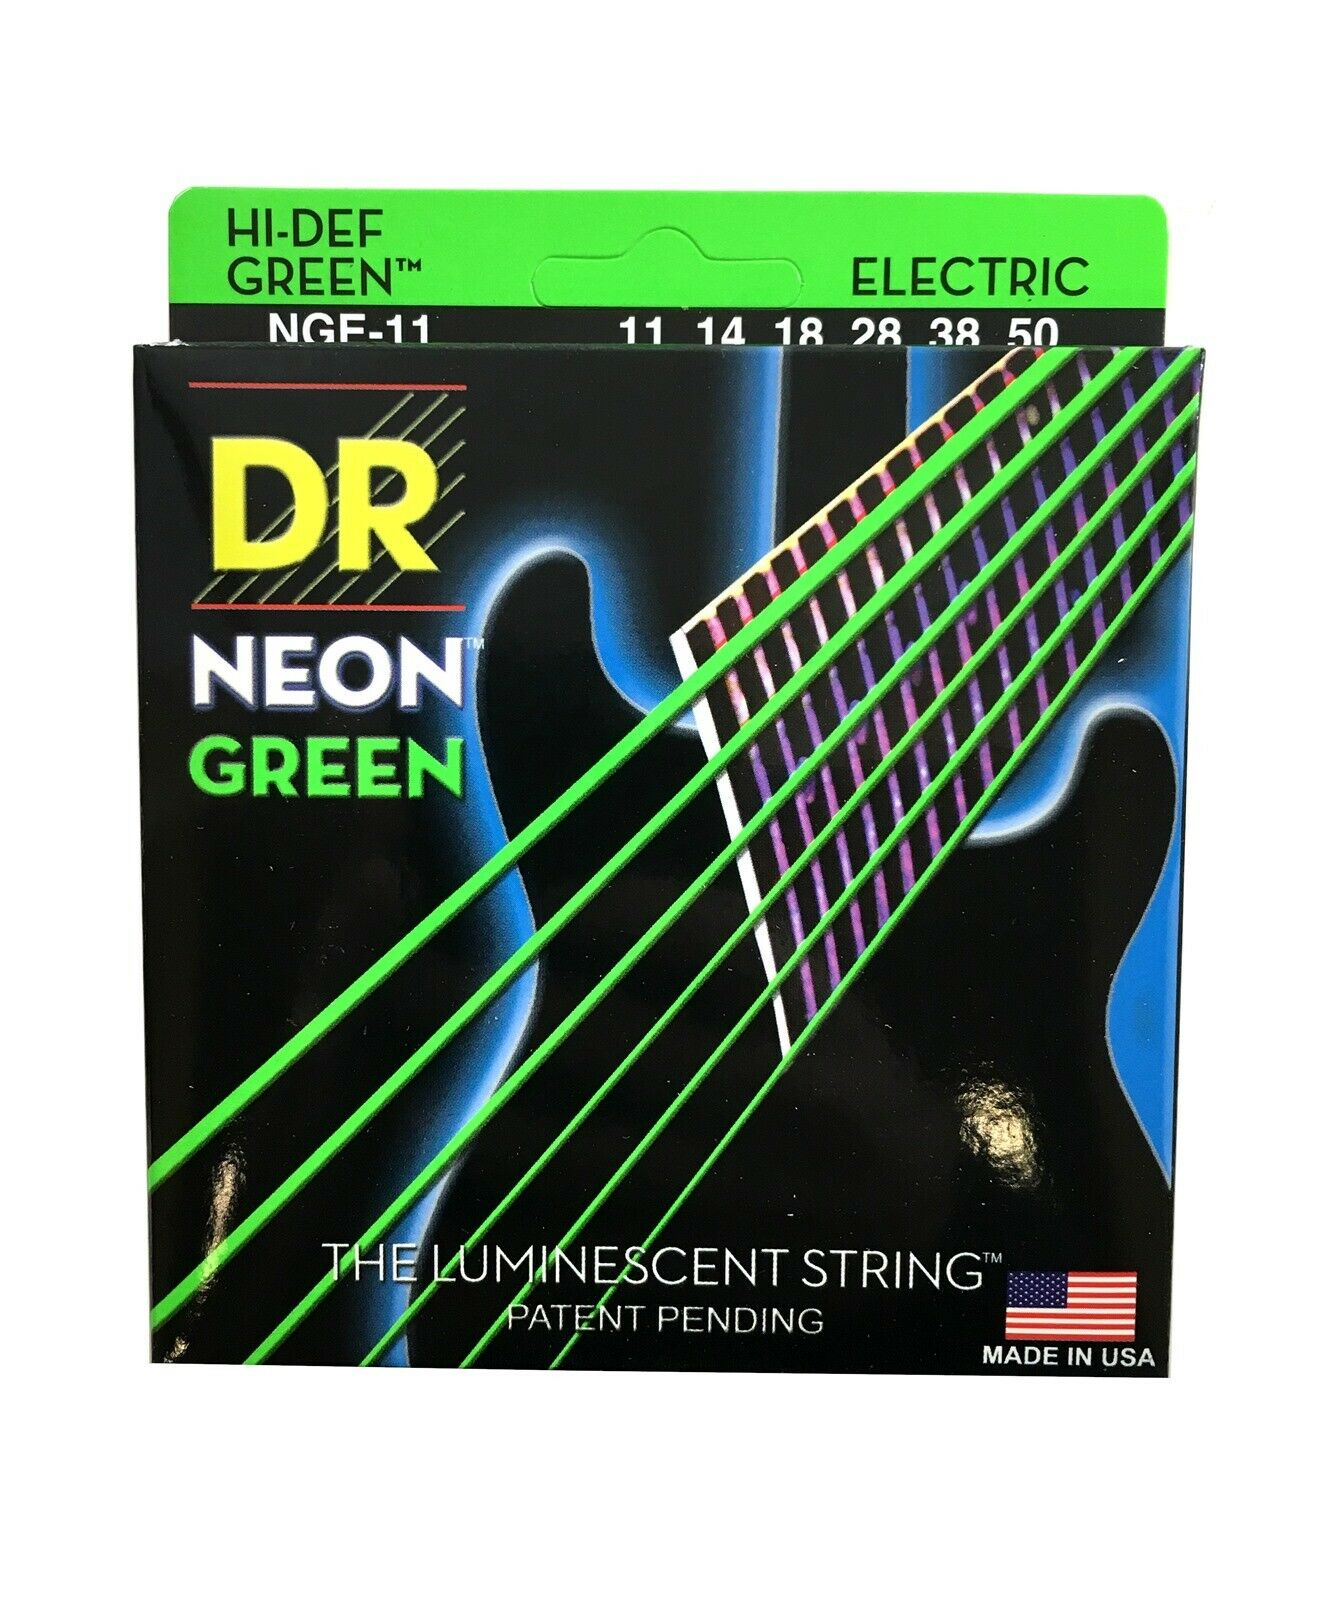 DR Guitar Strings Electric Neon Green 11-50 Heavy.